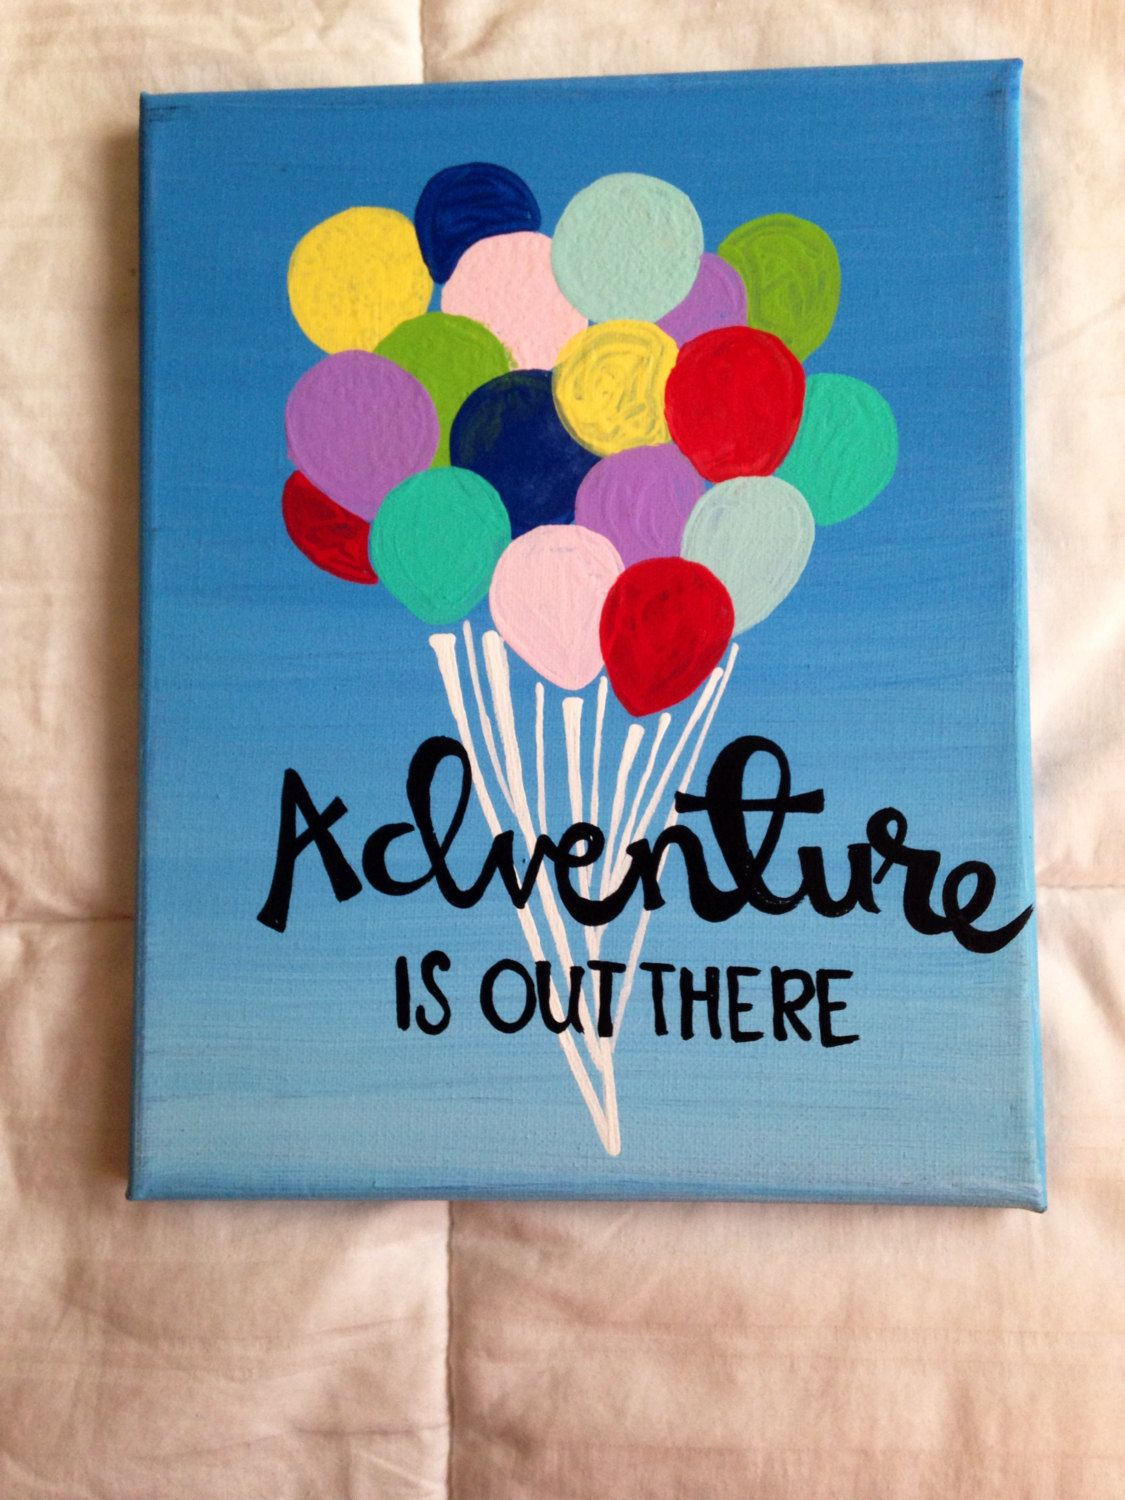 Canvas quote adventure is out there disney pixars by kismetcanvas canvas quote adventure is out there disney pixars by kismetcanvas 2000 diy canvascanvas craftseasy solutioingenieria Choice Image